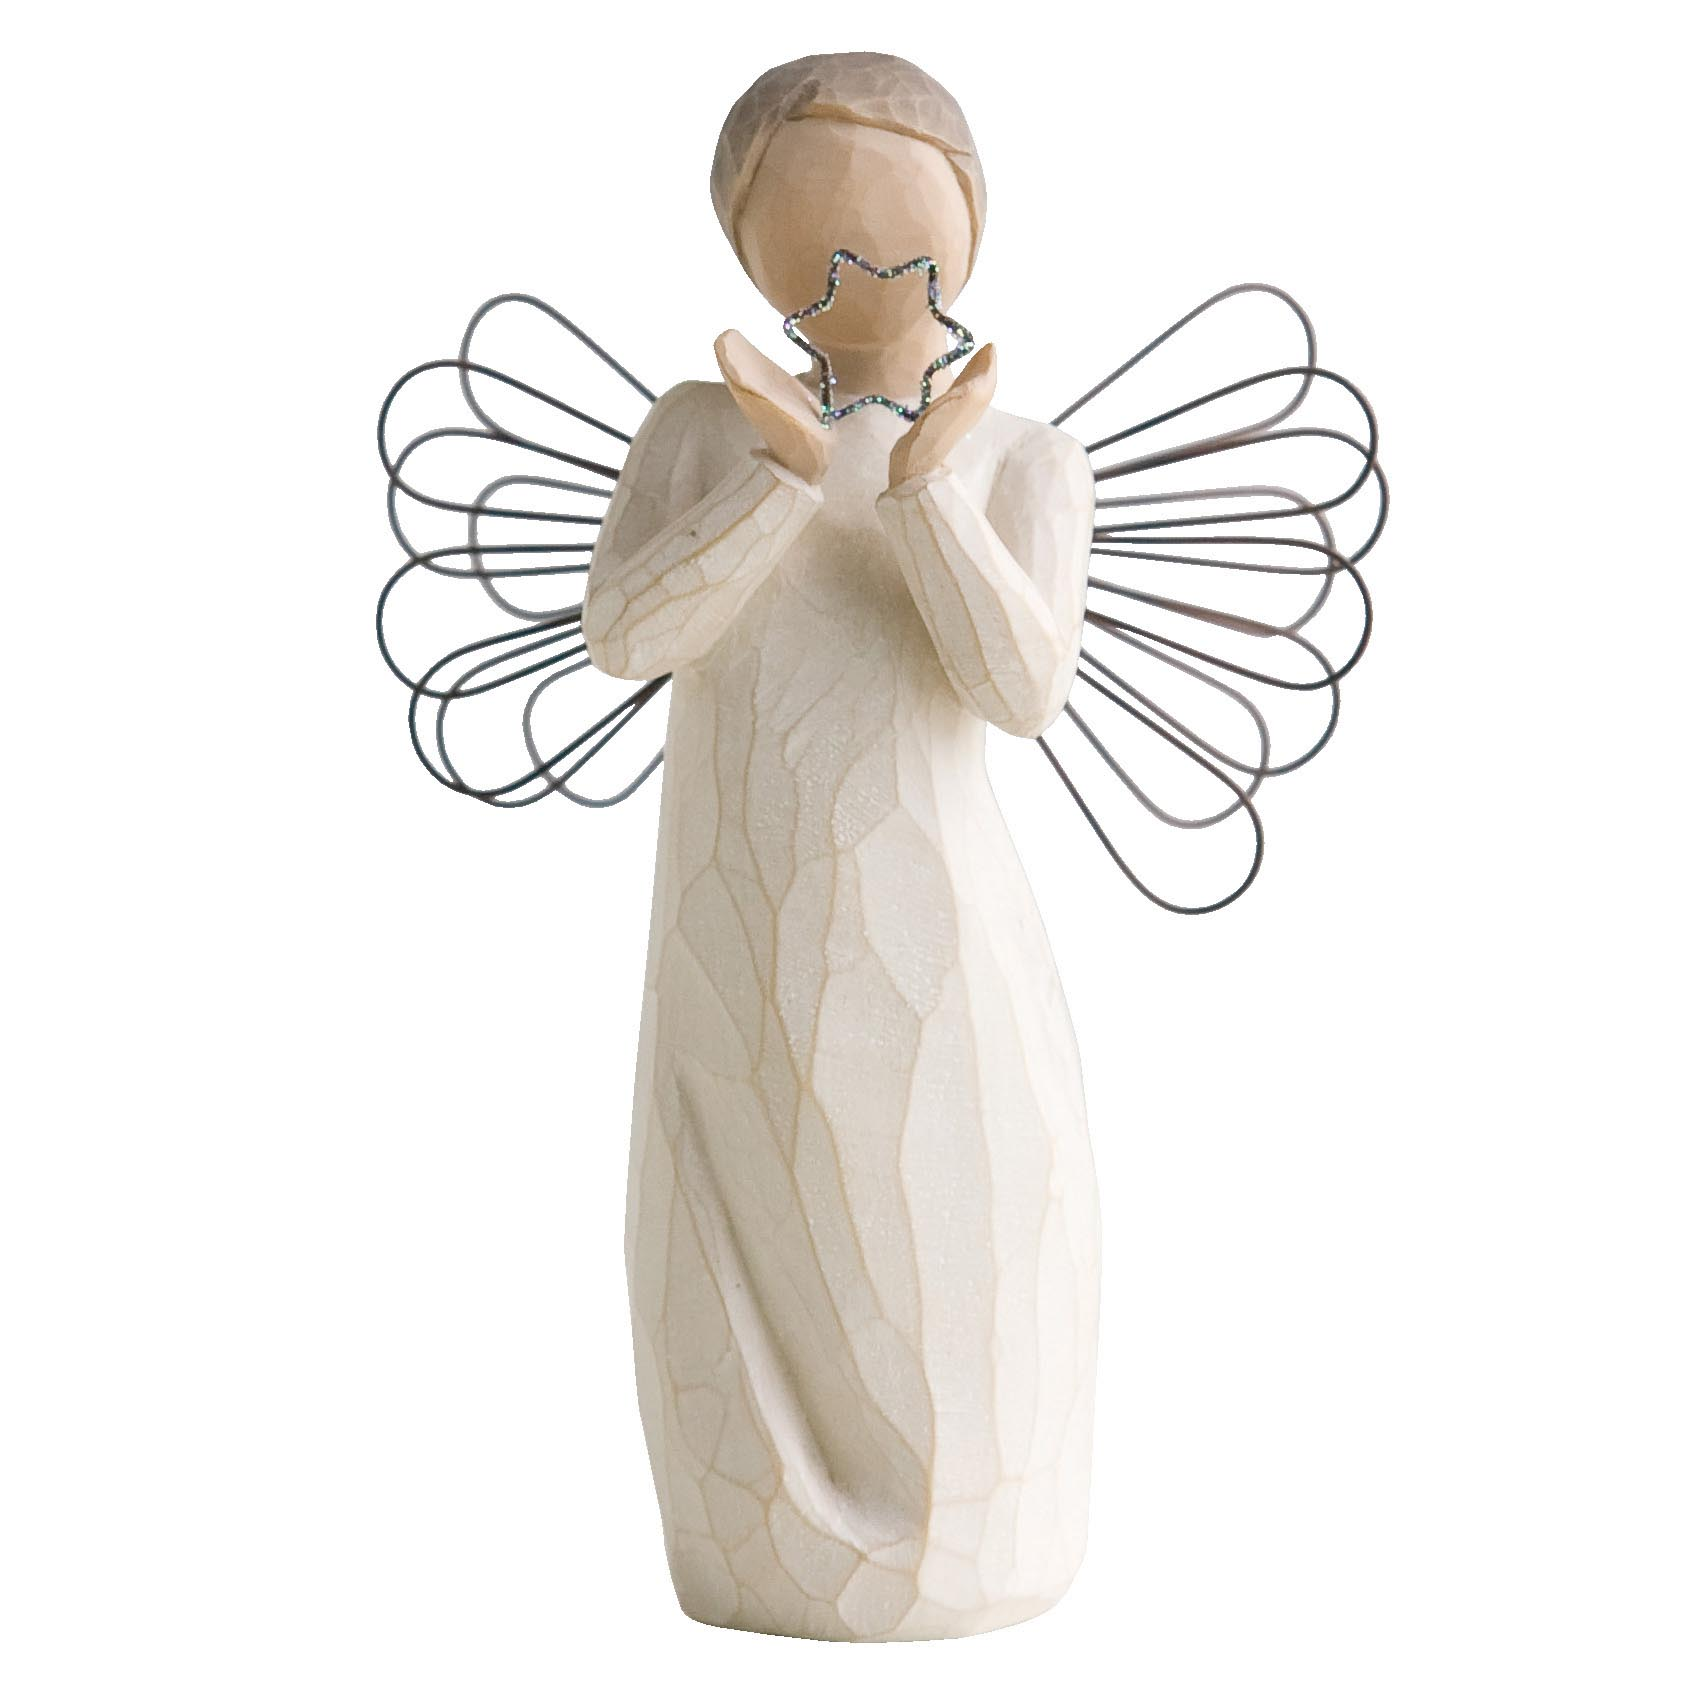 Angel bright Star / Strahlender Stern (26150)